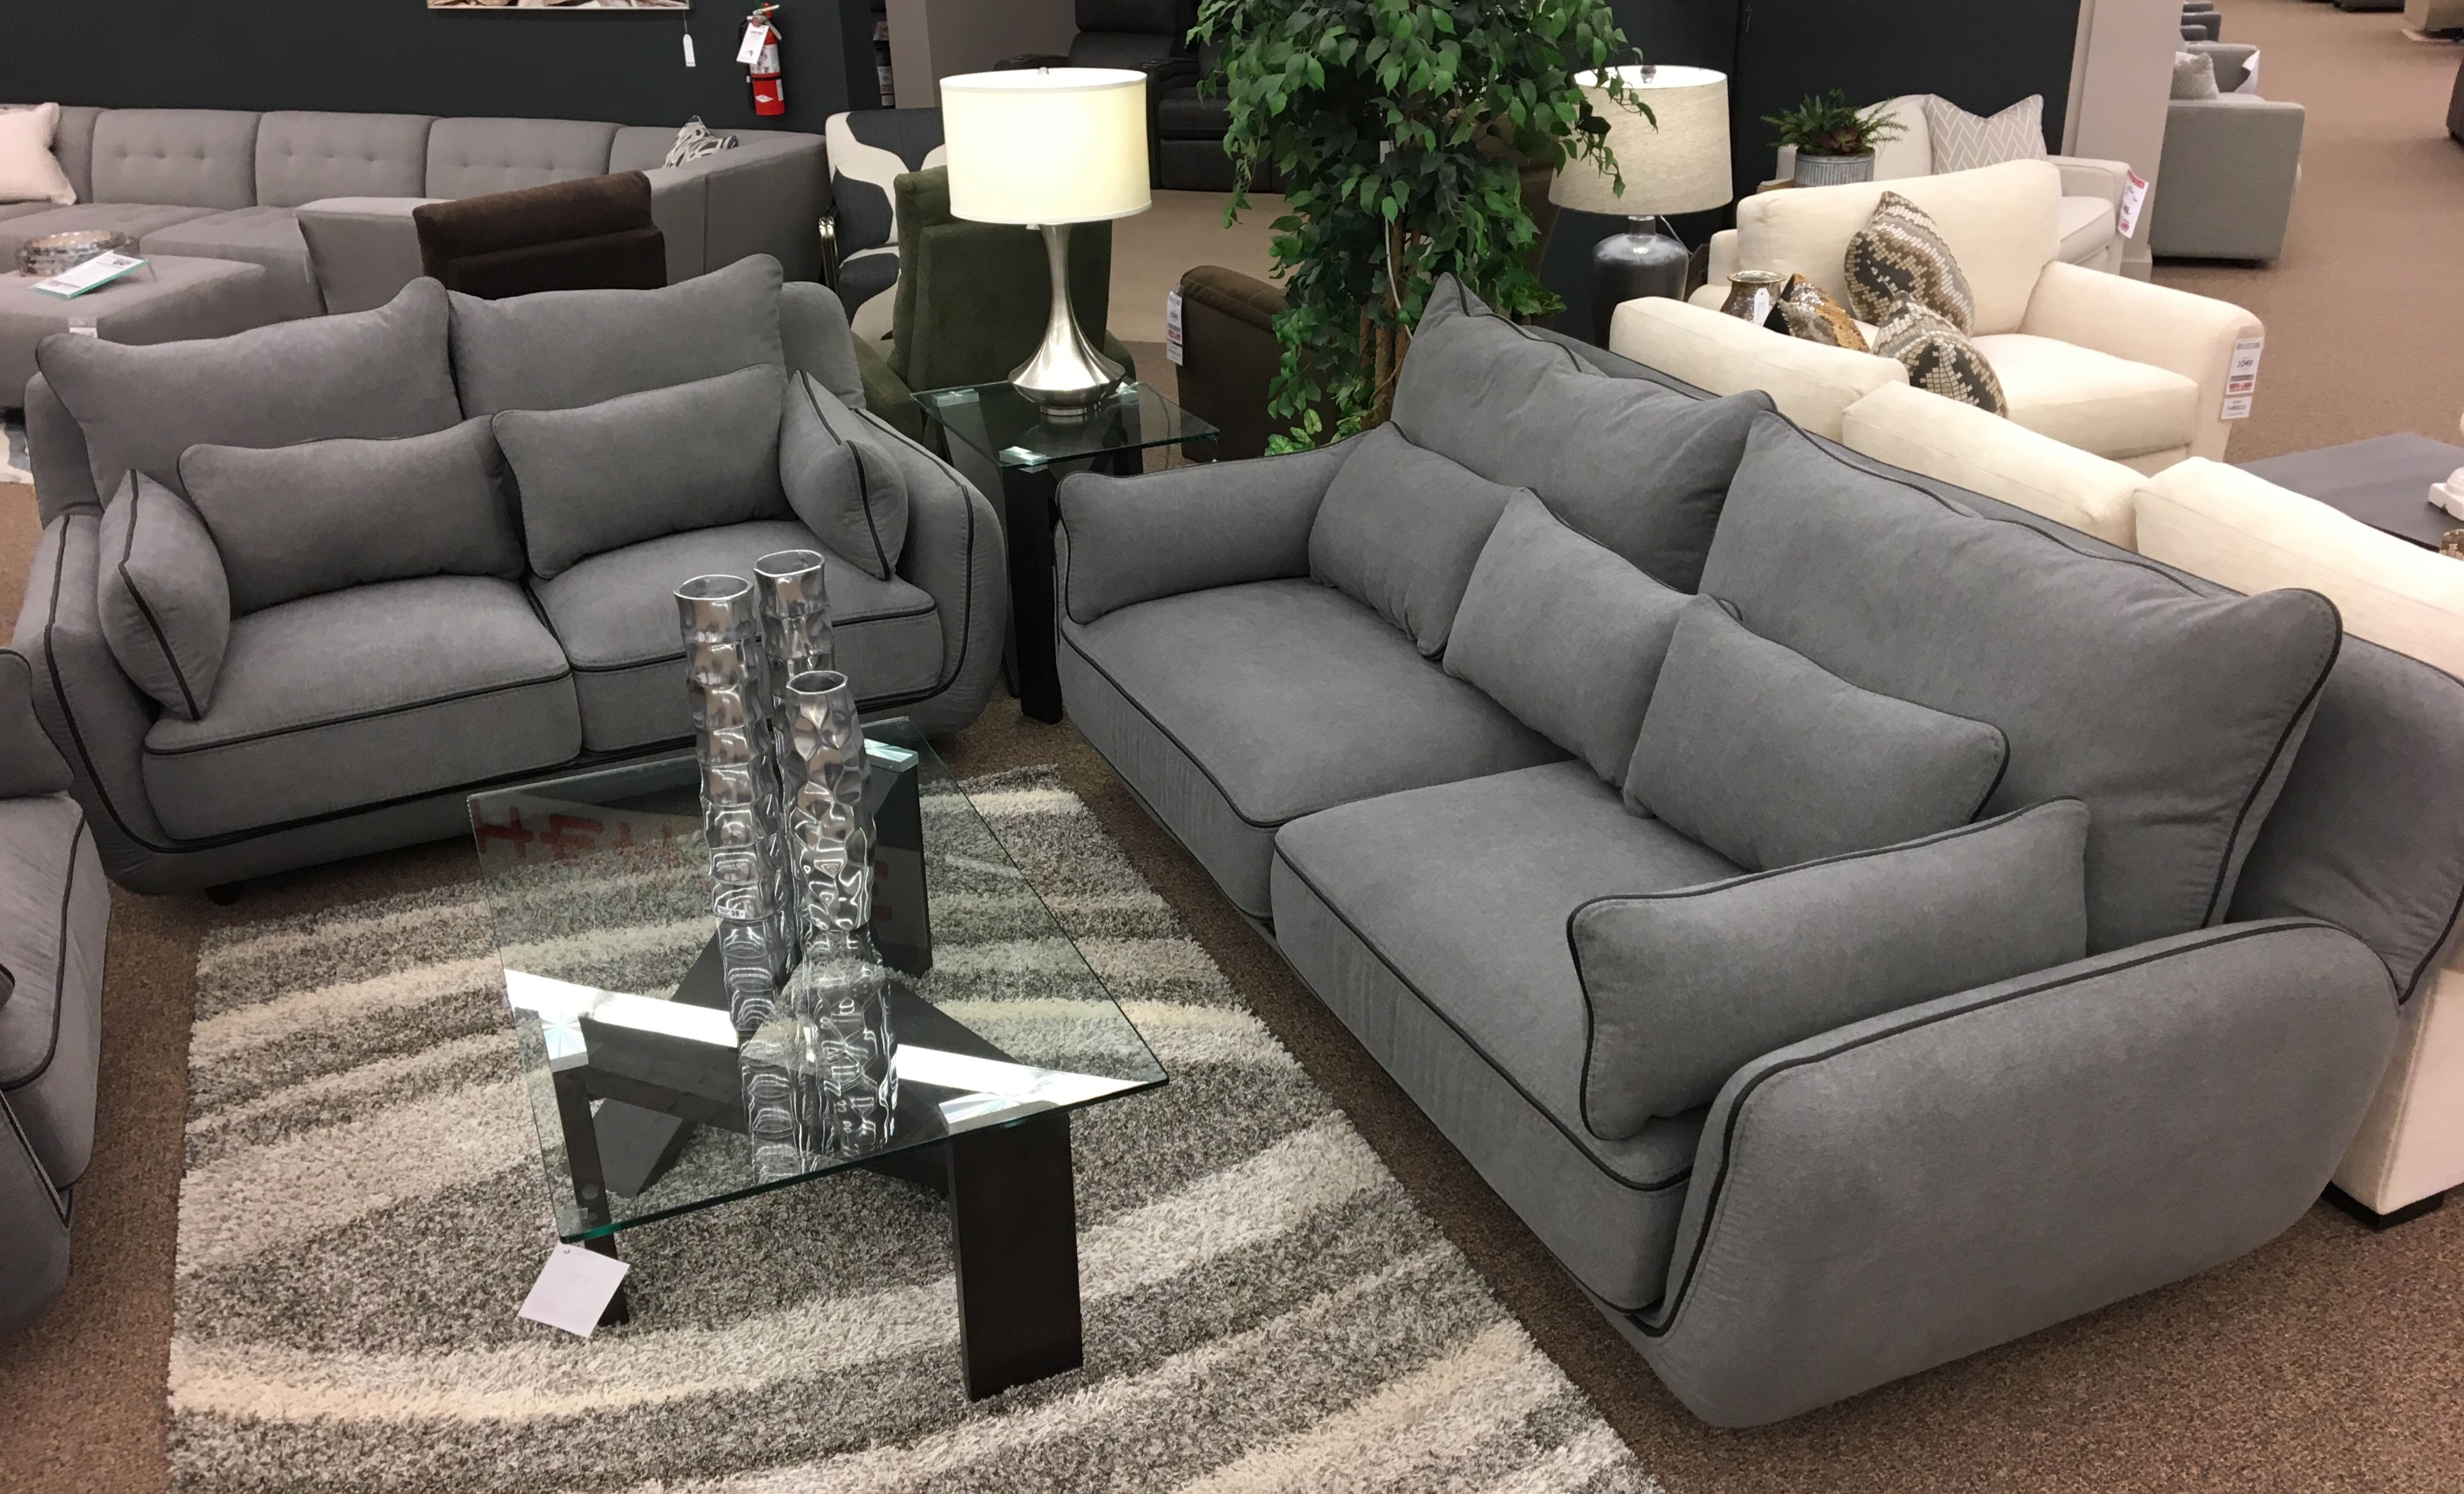 Cozy with a modern twist cuddle up on our brand new Warwick sofa